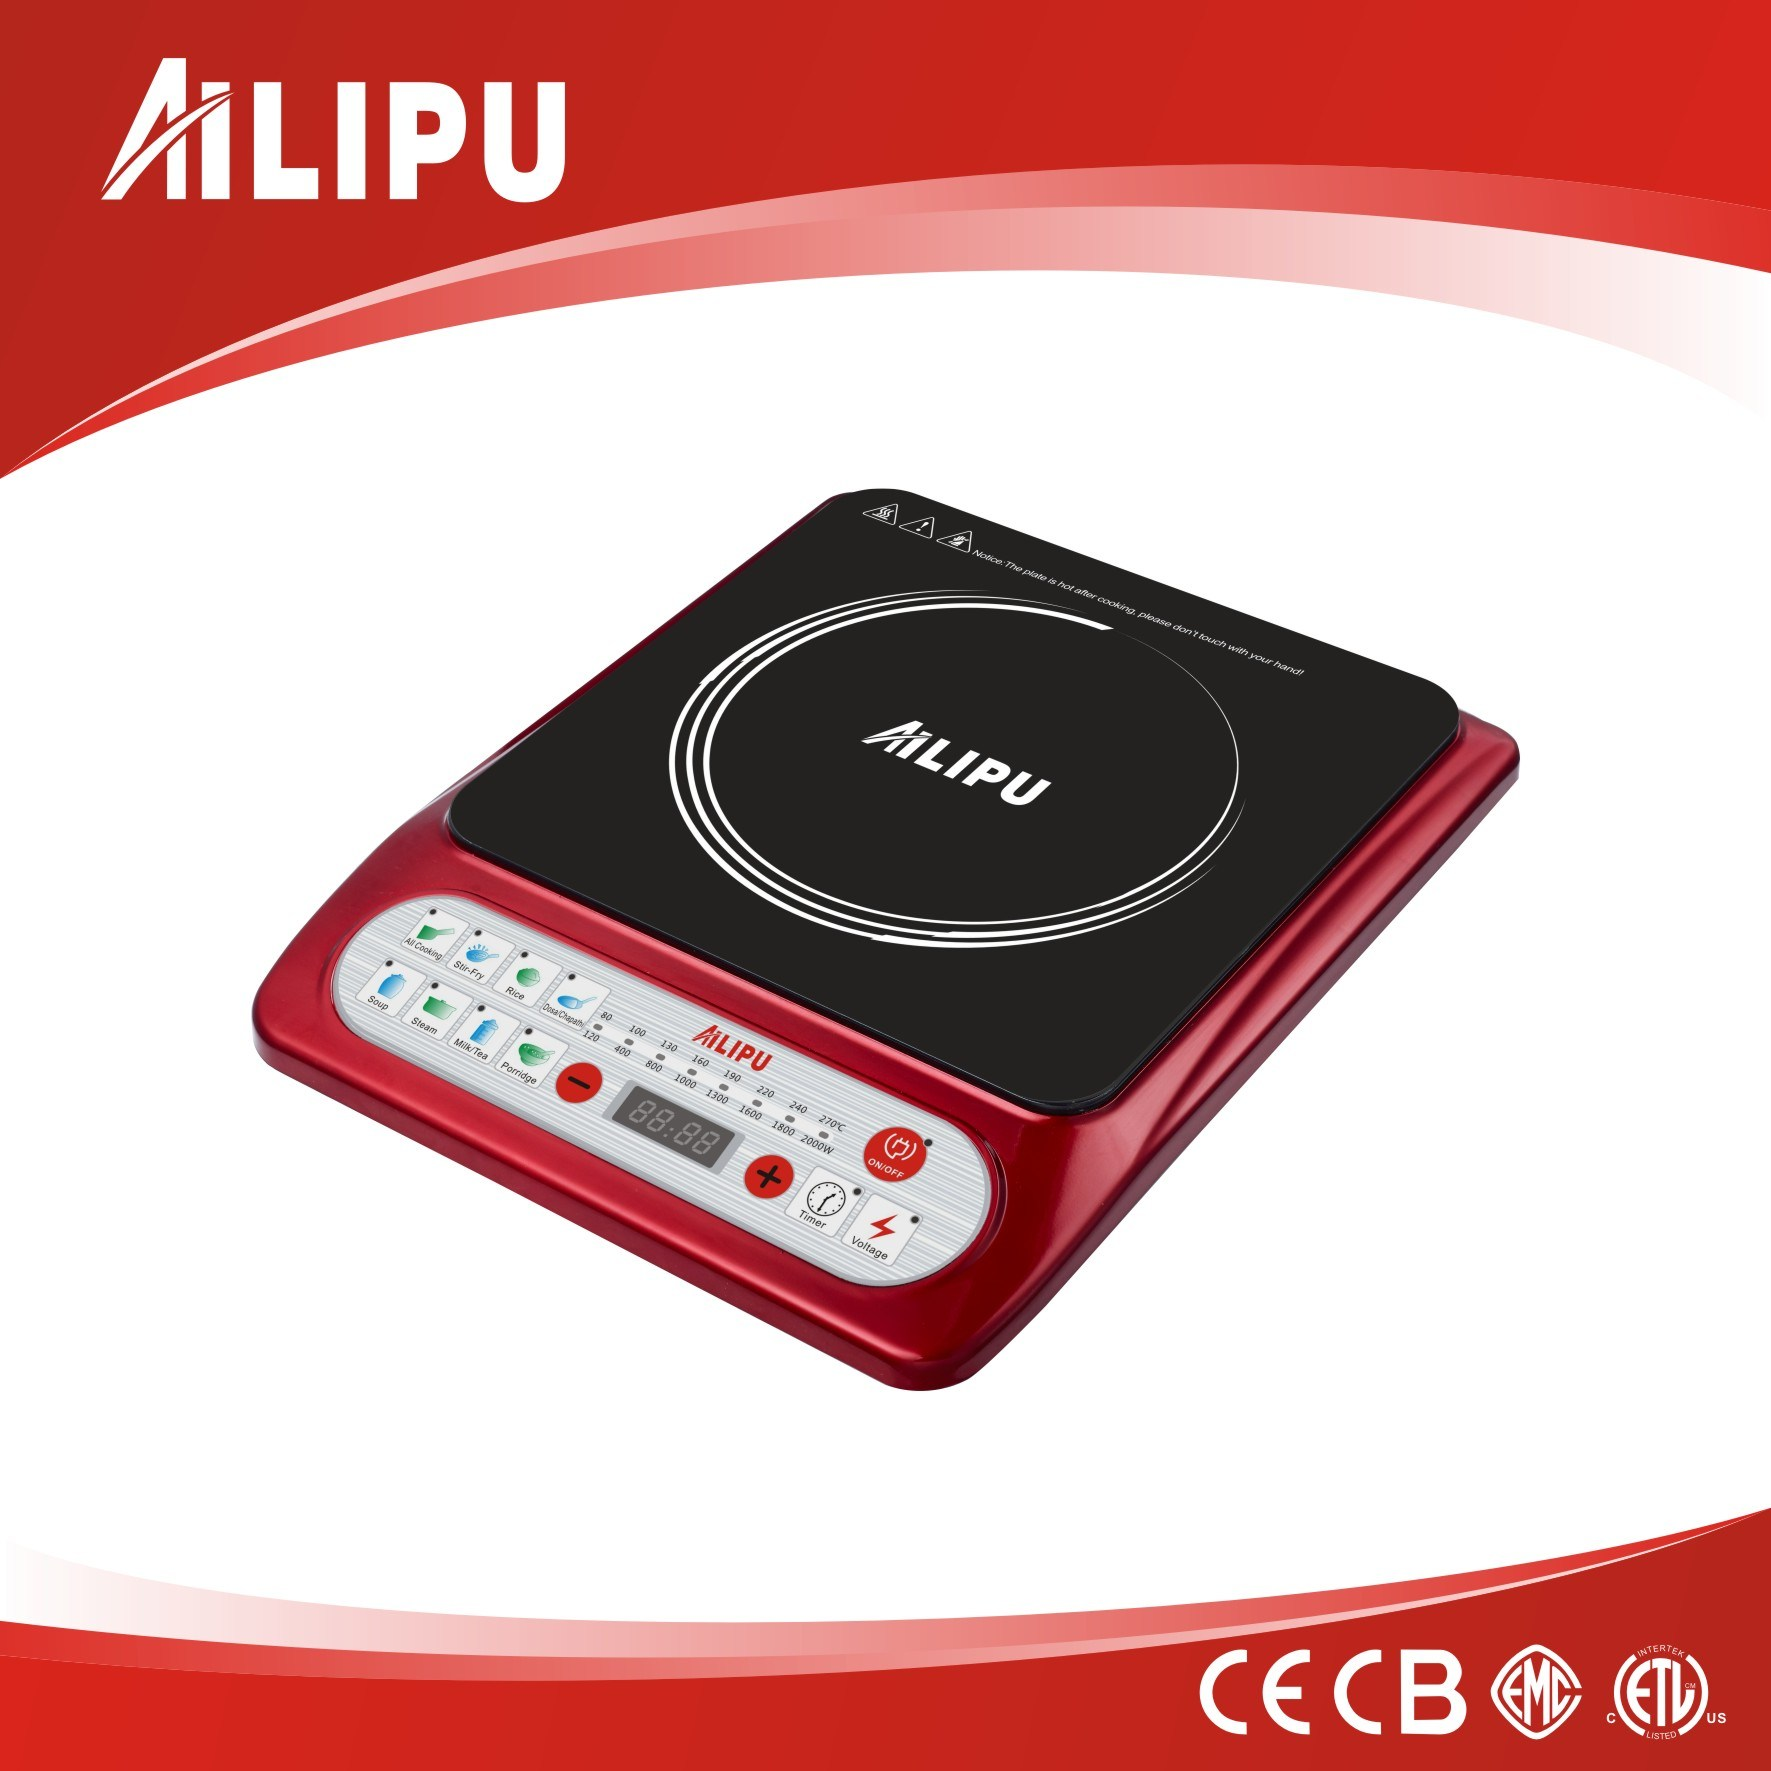 1500W ETL Approved Push Button Induction Cooktop Model Sm-A59